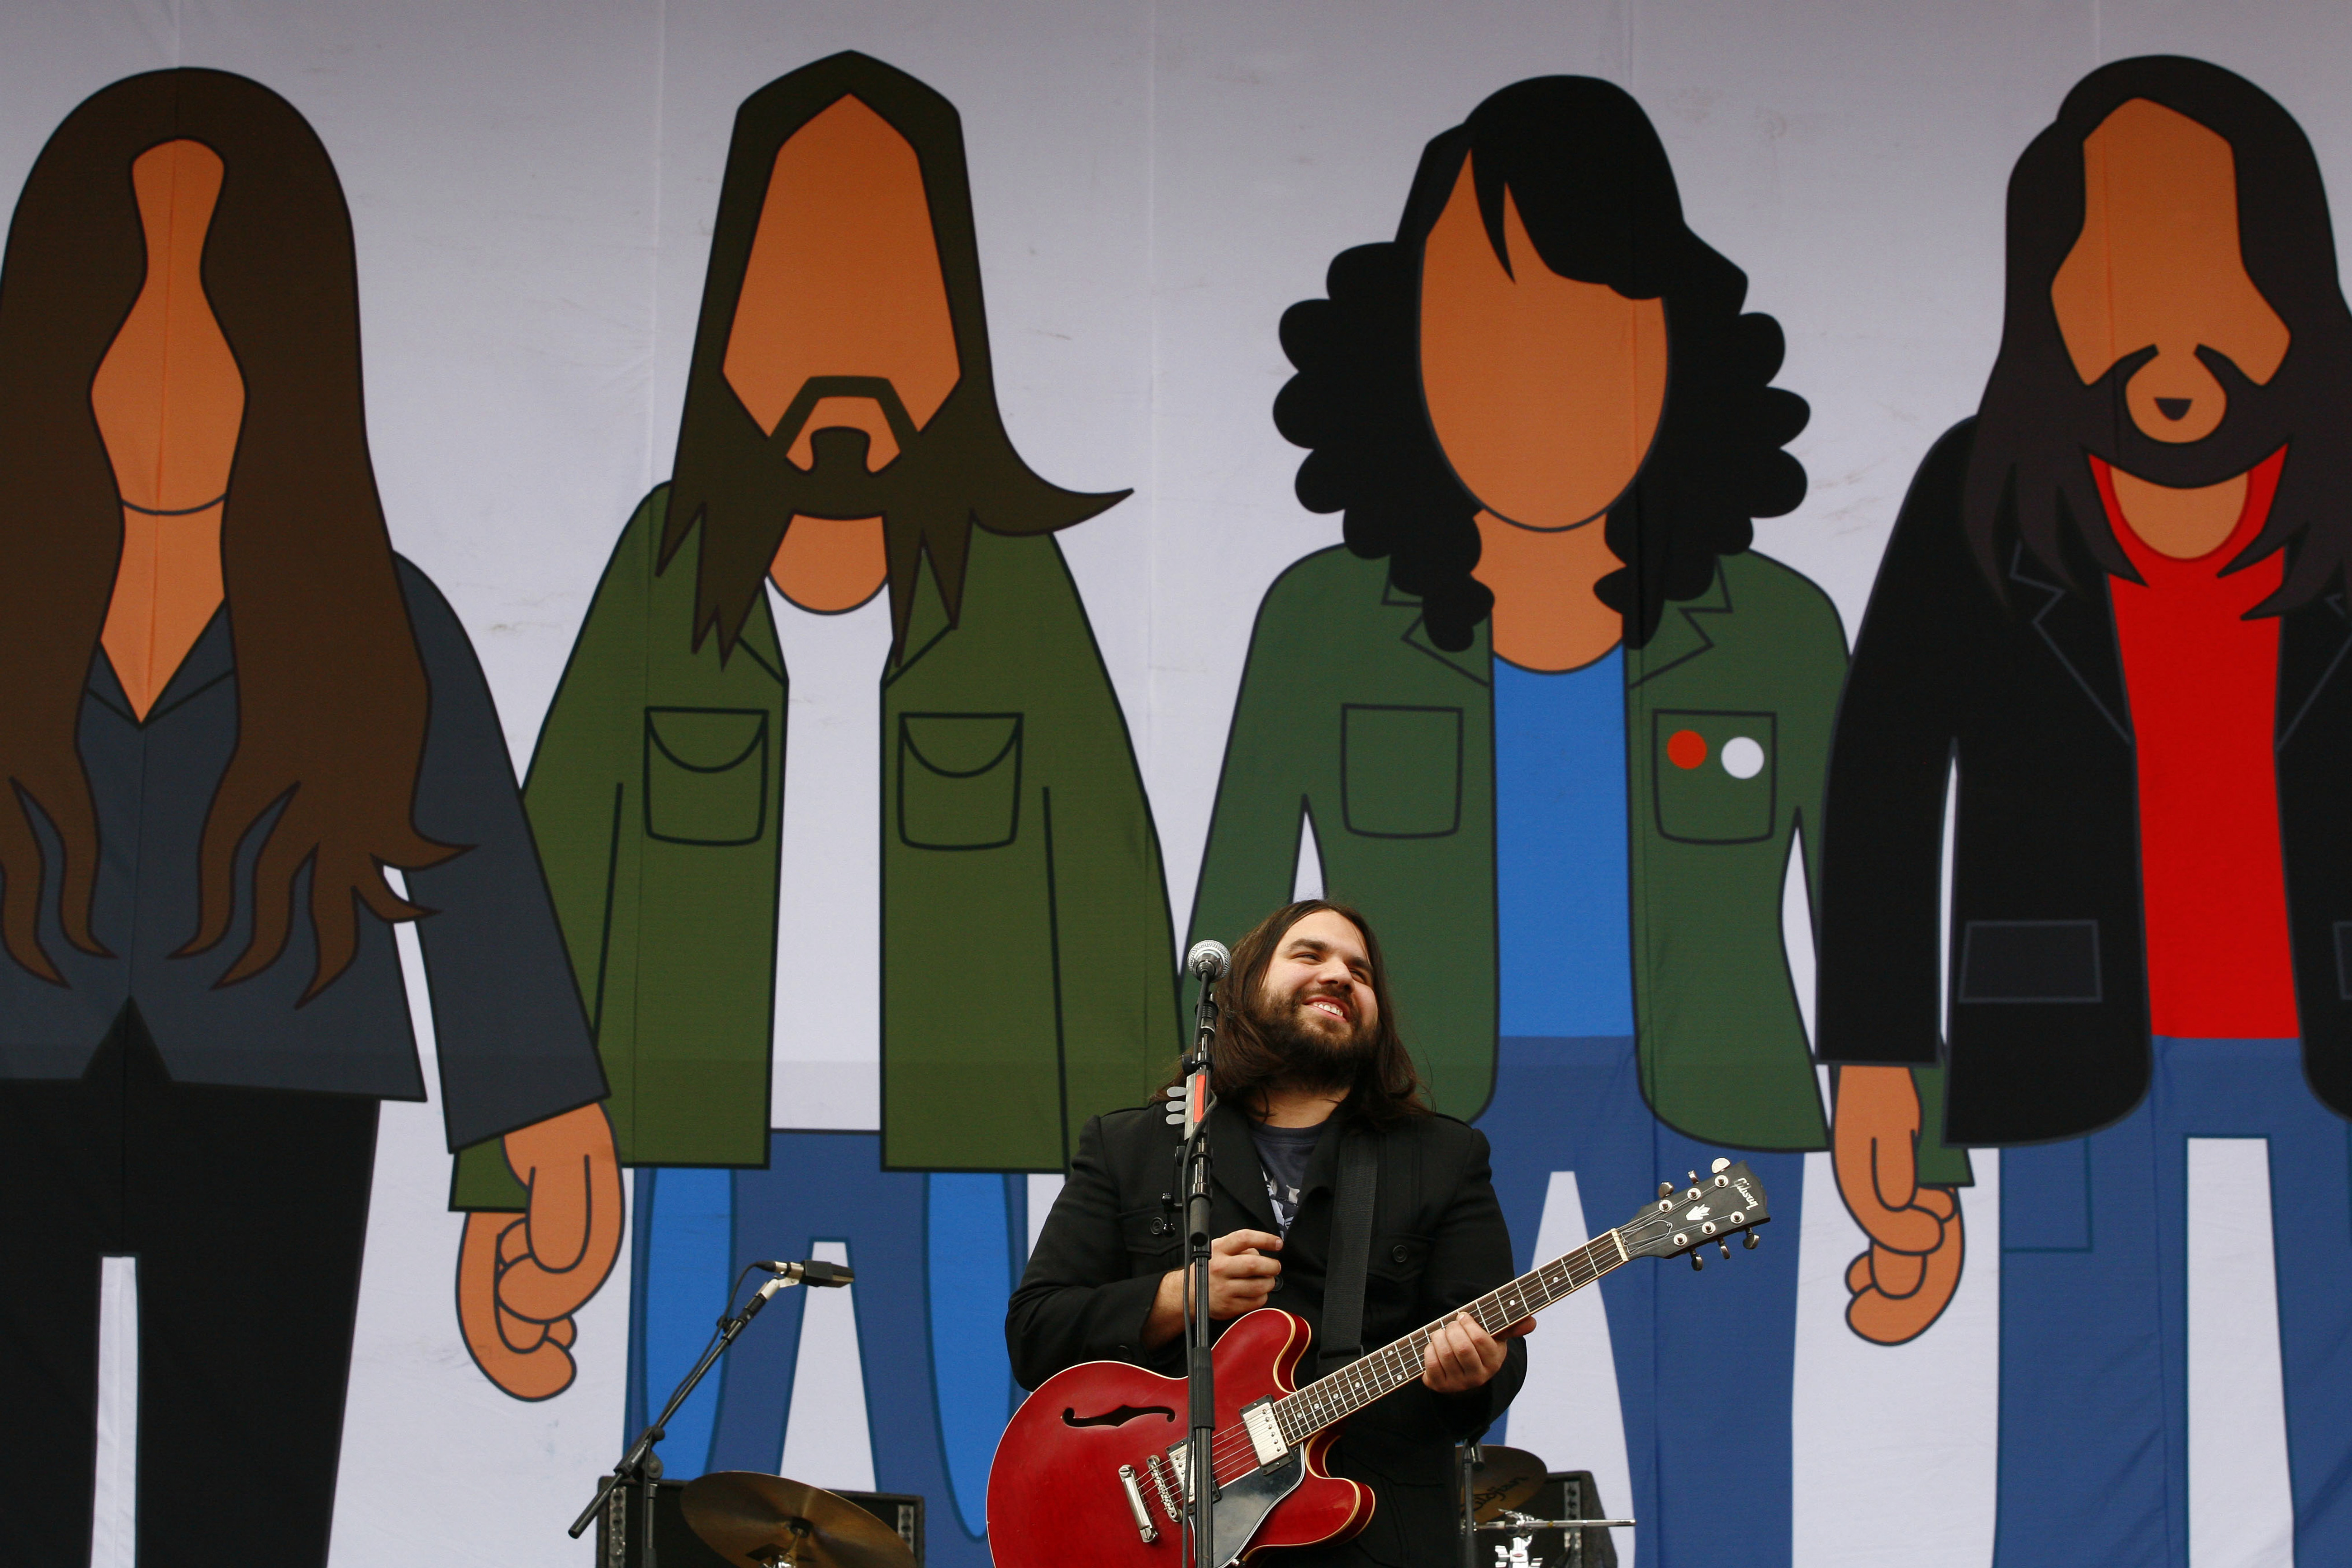 Magic Numbers, V Festival, 2006, Chelmsford. (Photo by: PYMCA/UIG via Getty Images)